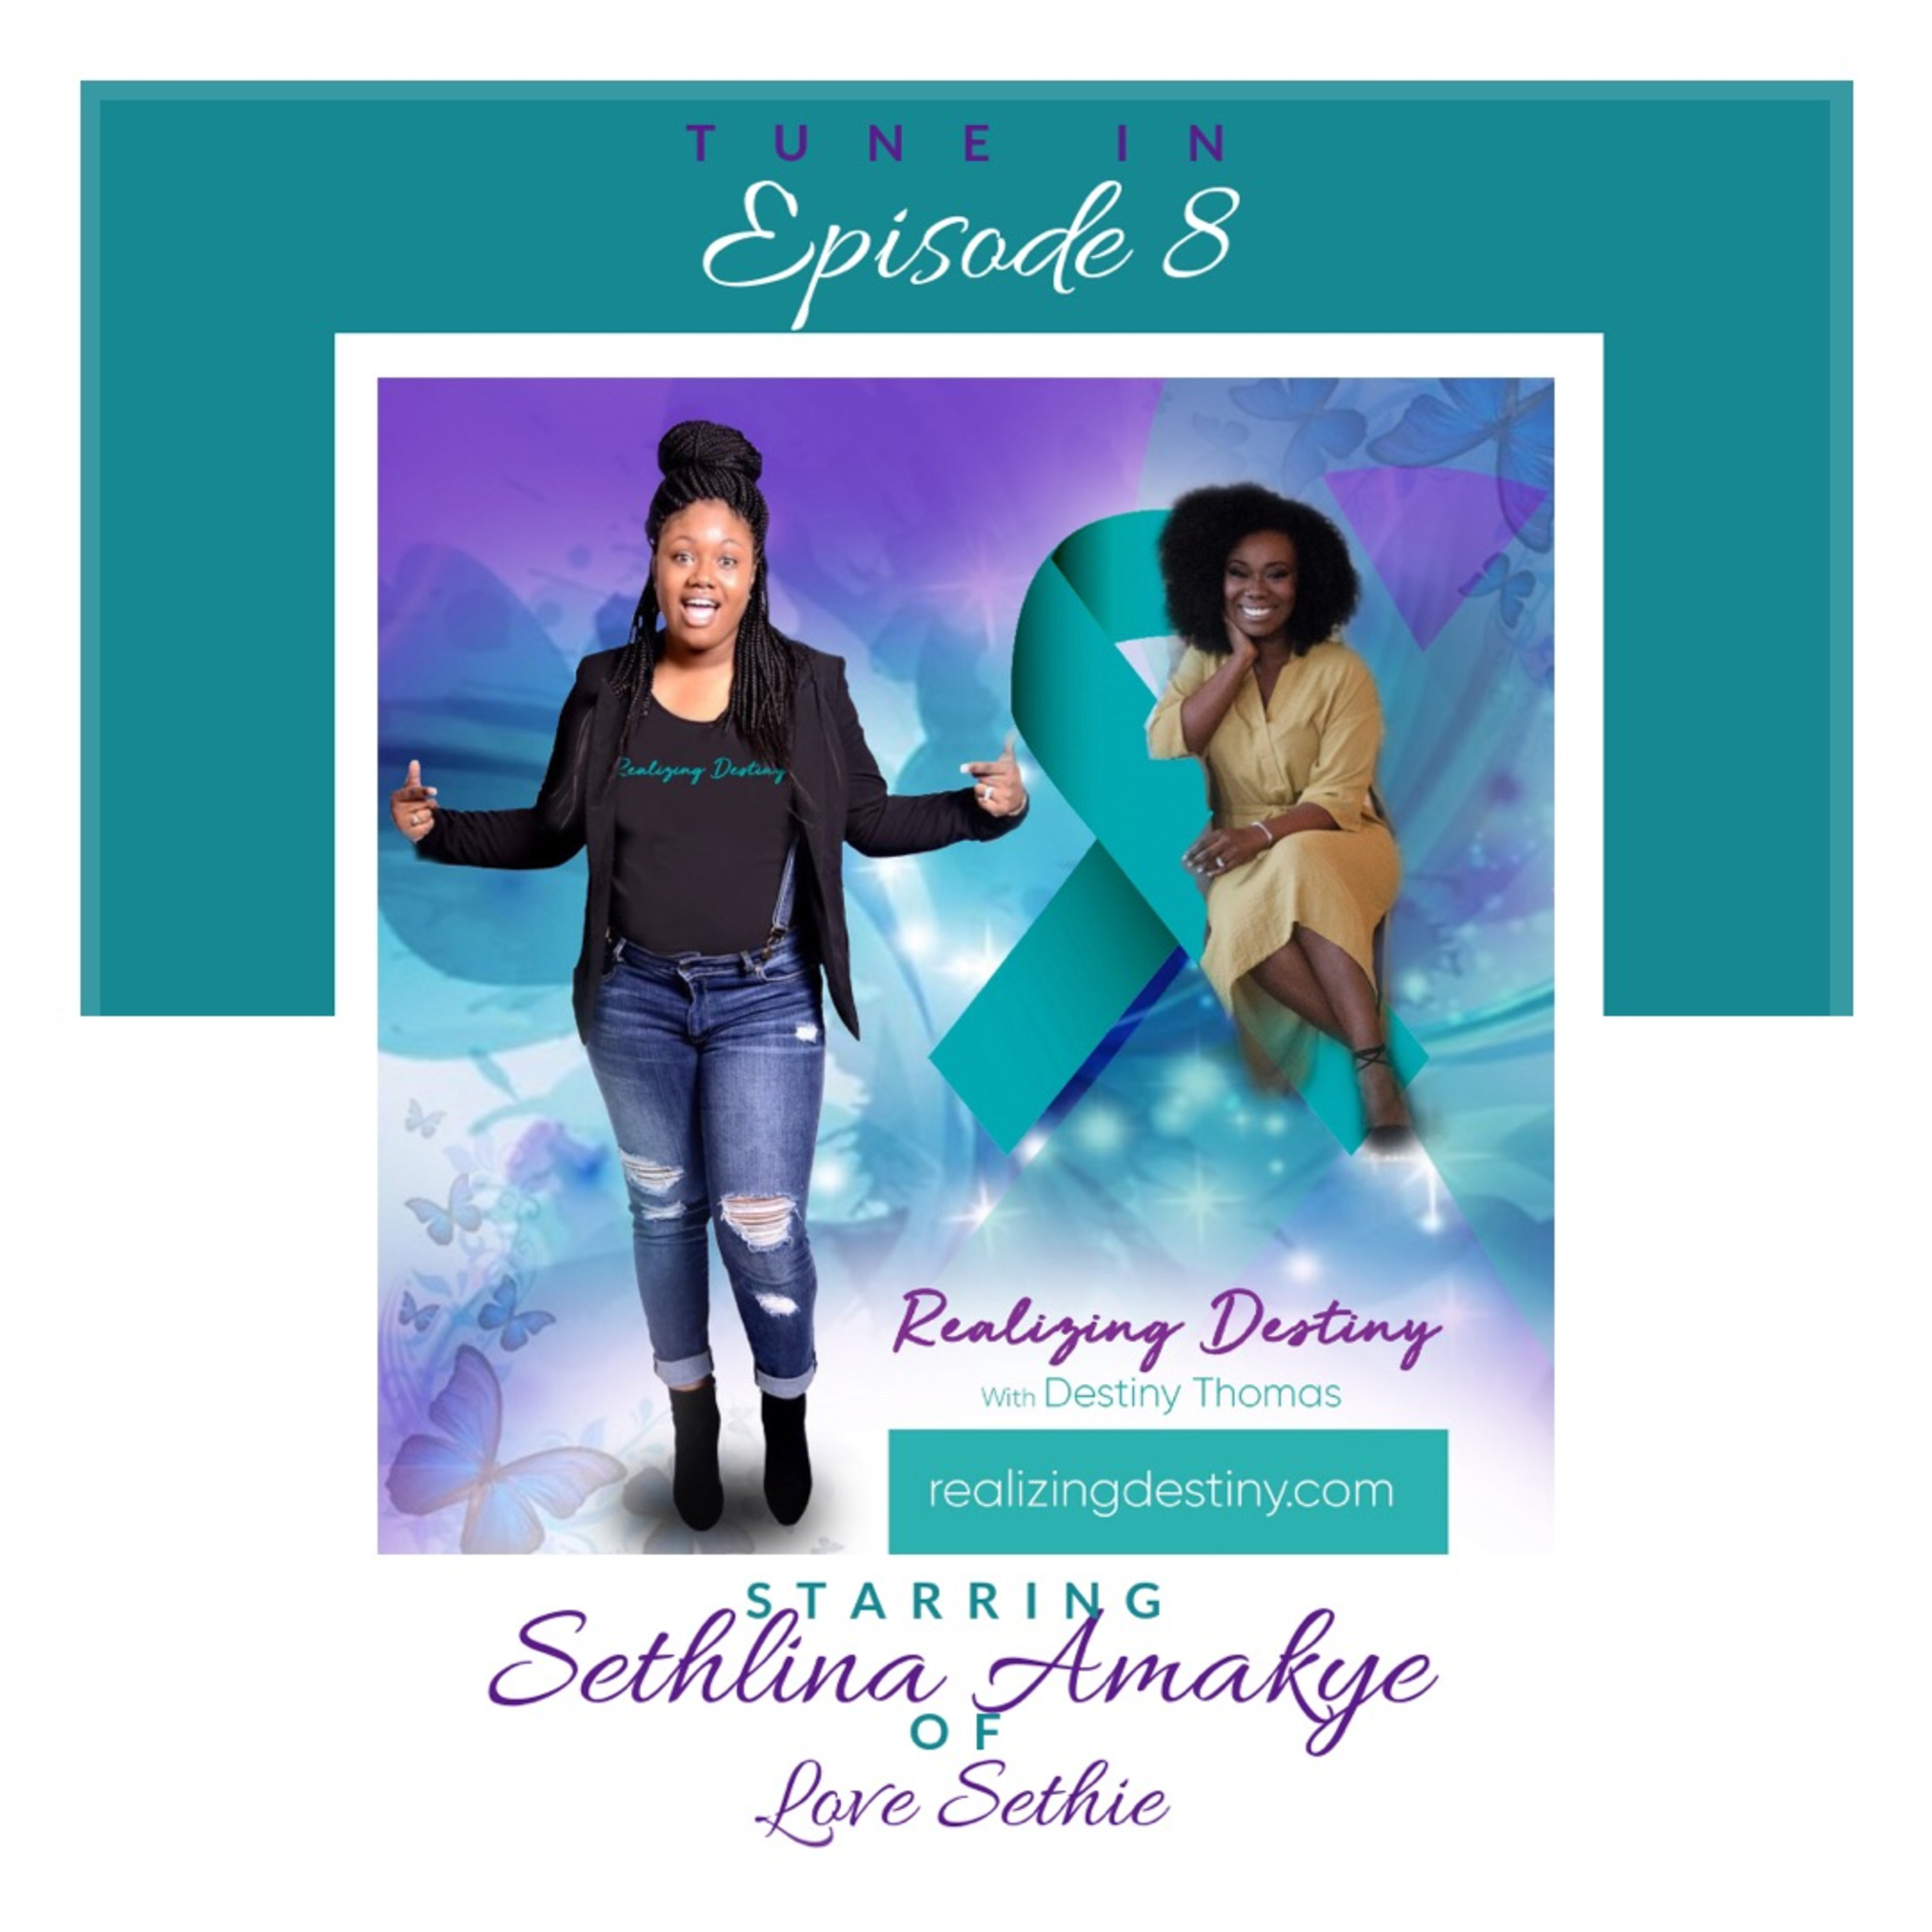 God you told me to jump, now what? Entrepreneurship w/ God Special Guest Sethlina Amakye